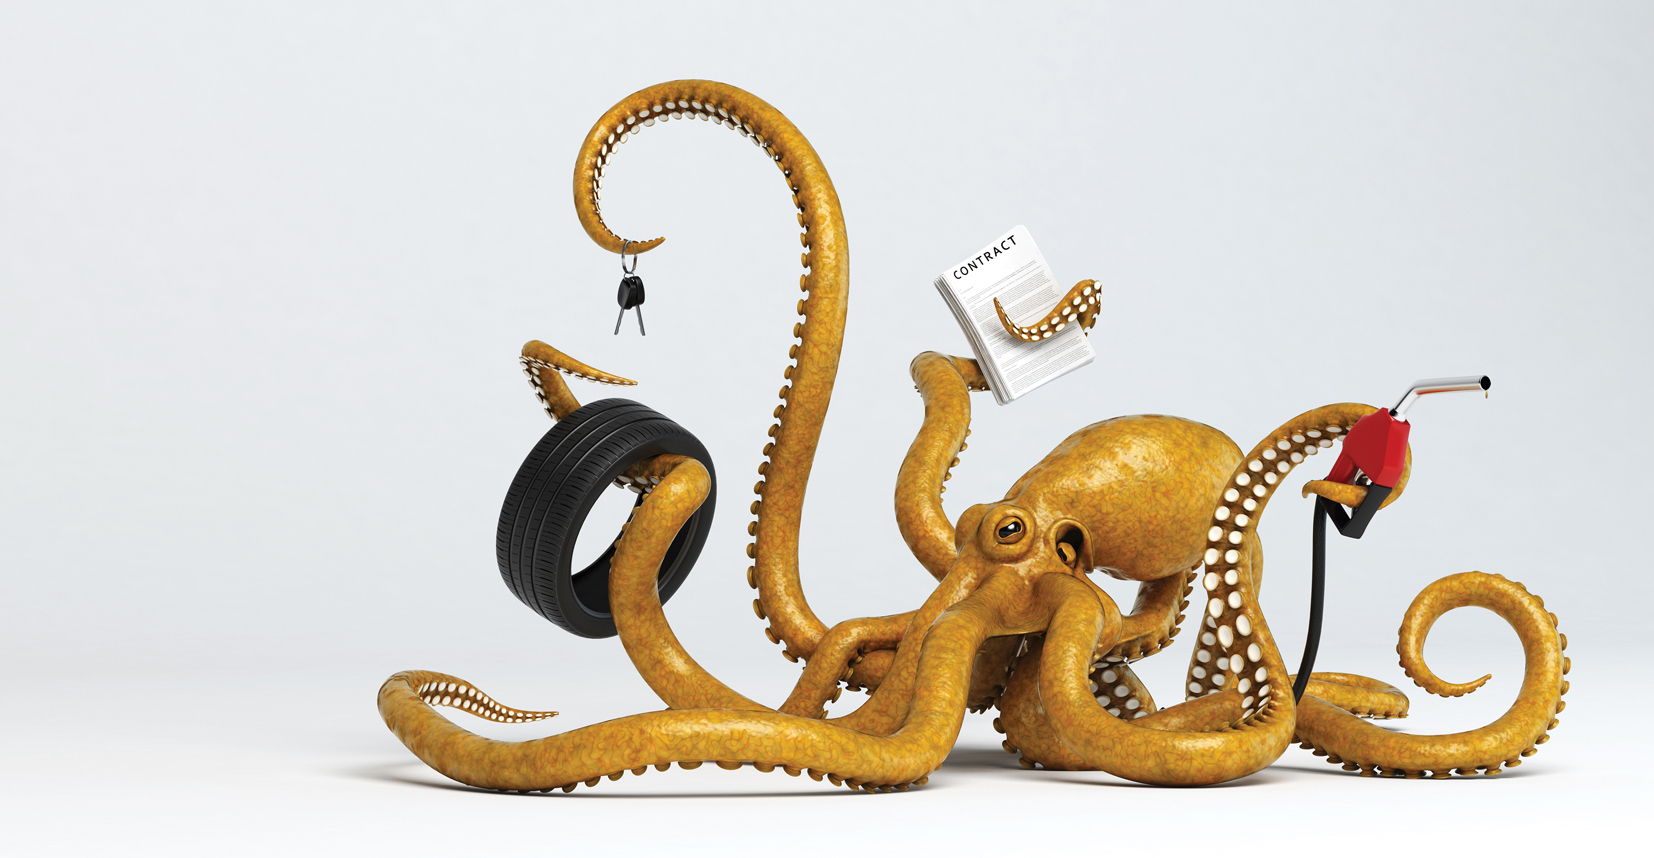 Contract Octopus